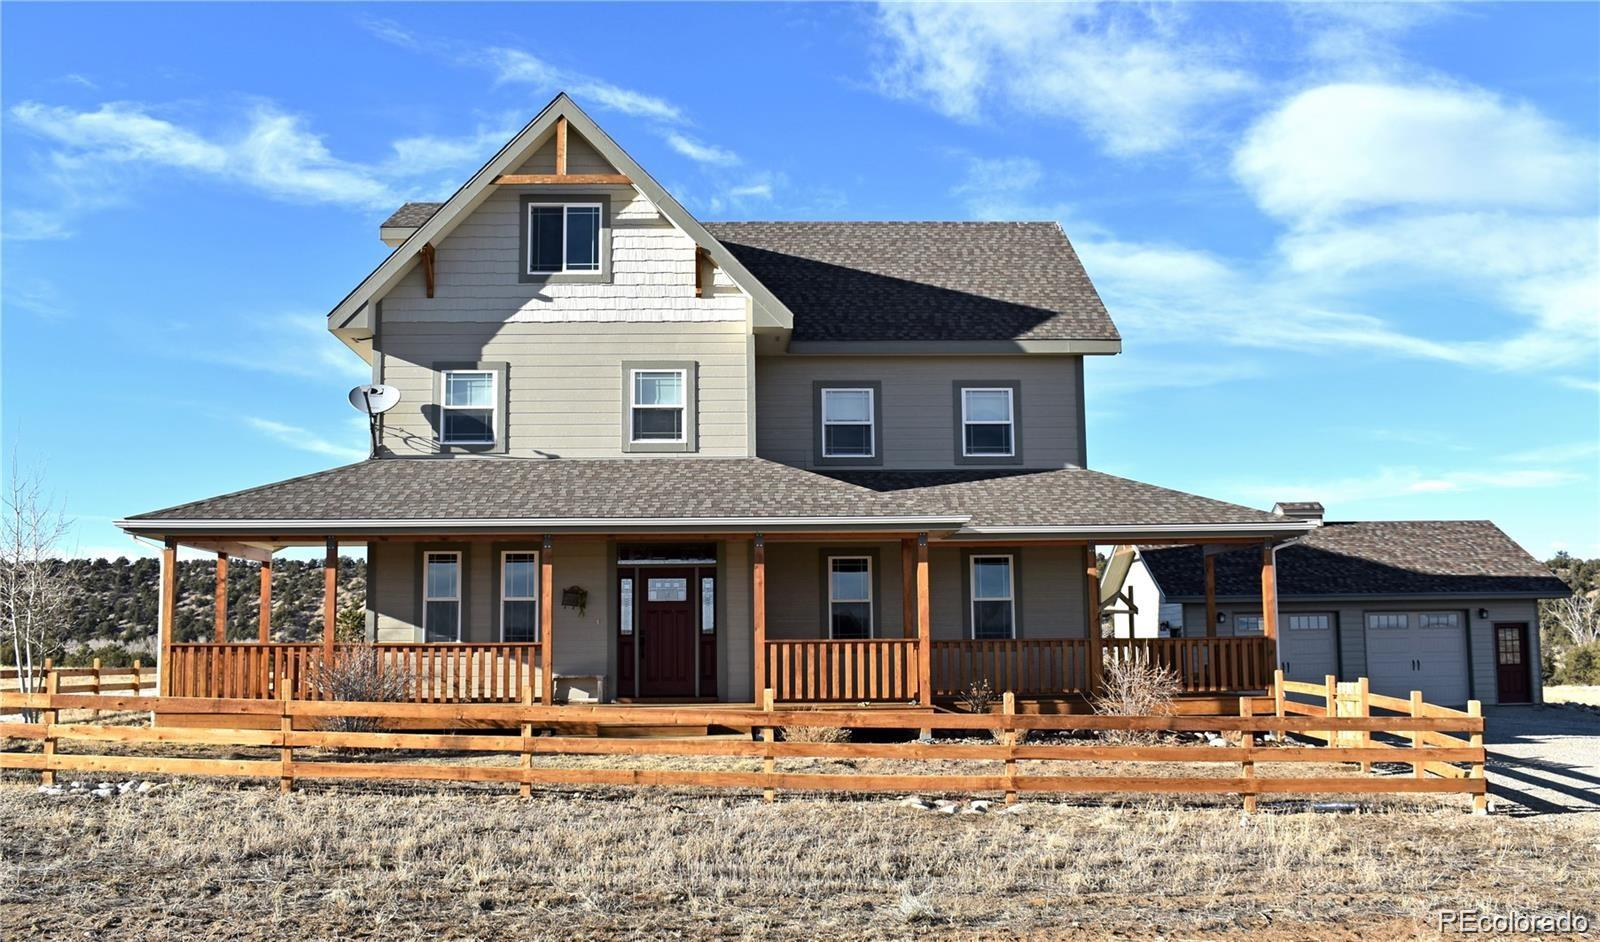 12908 County Road 162, Nathrop, CO 81236 - Nathrop, CO real estate listing